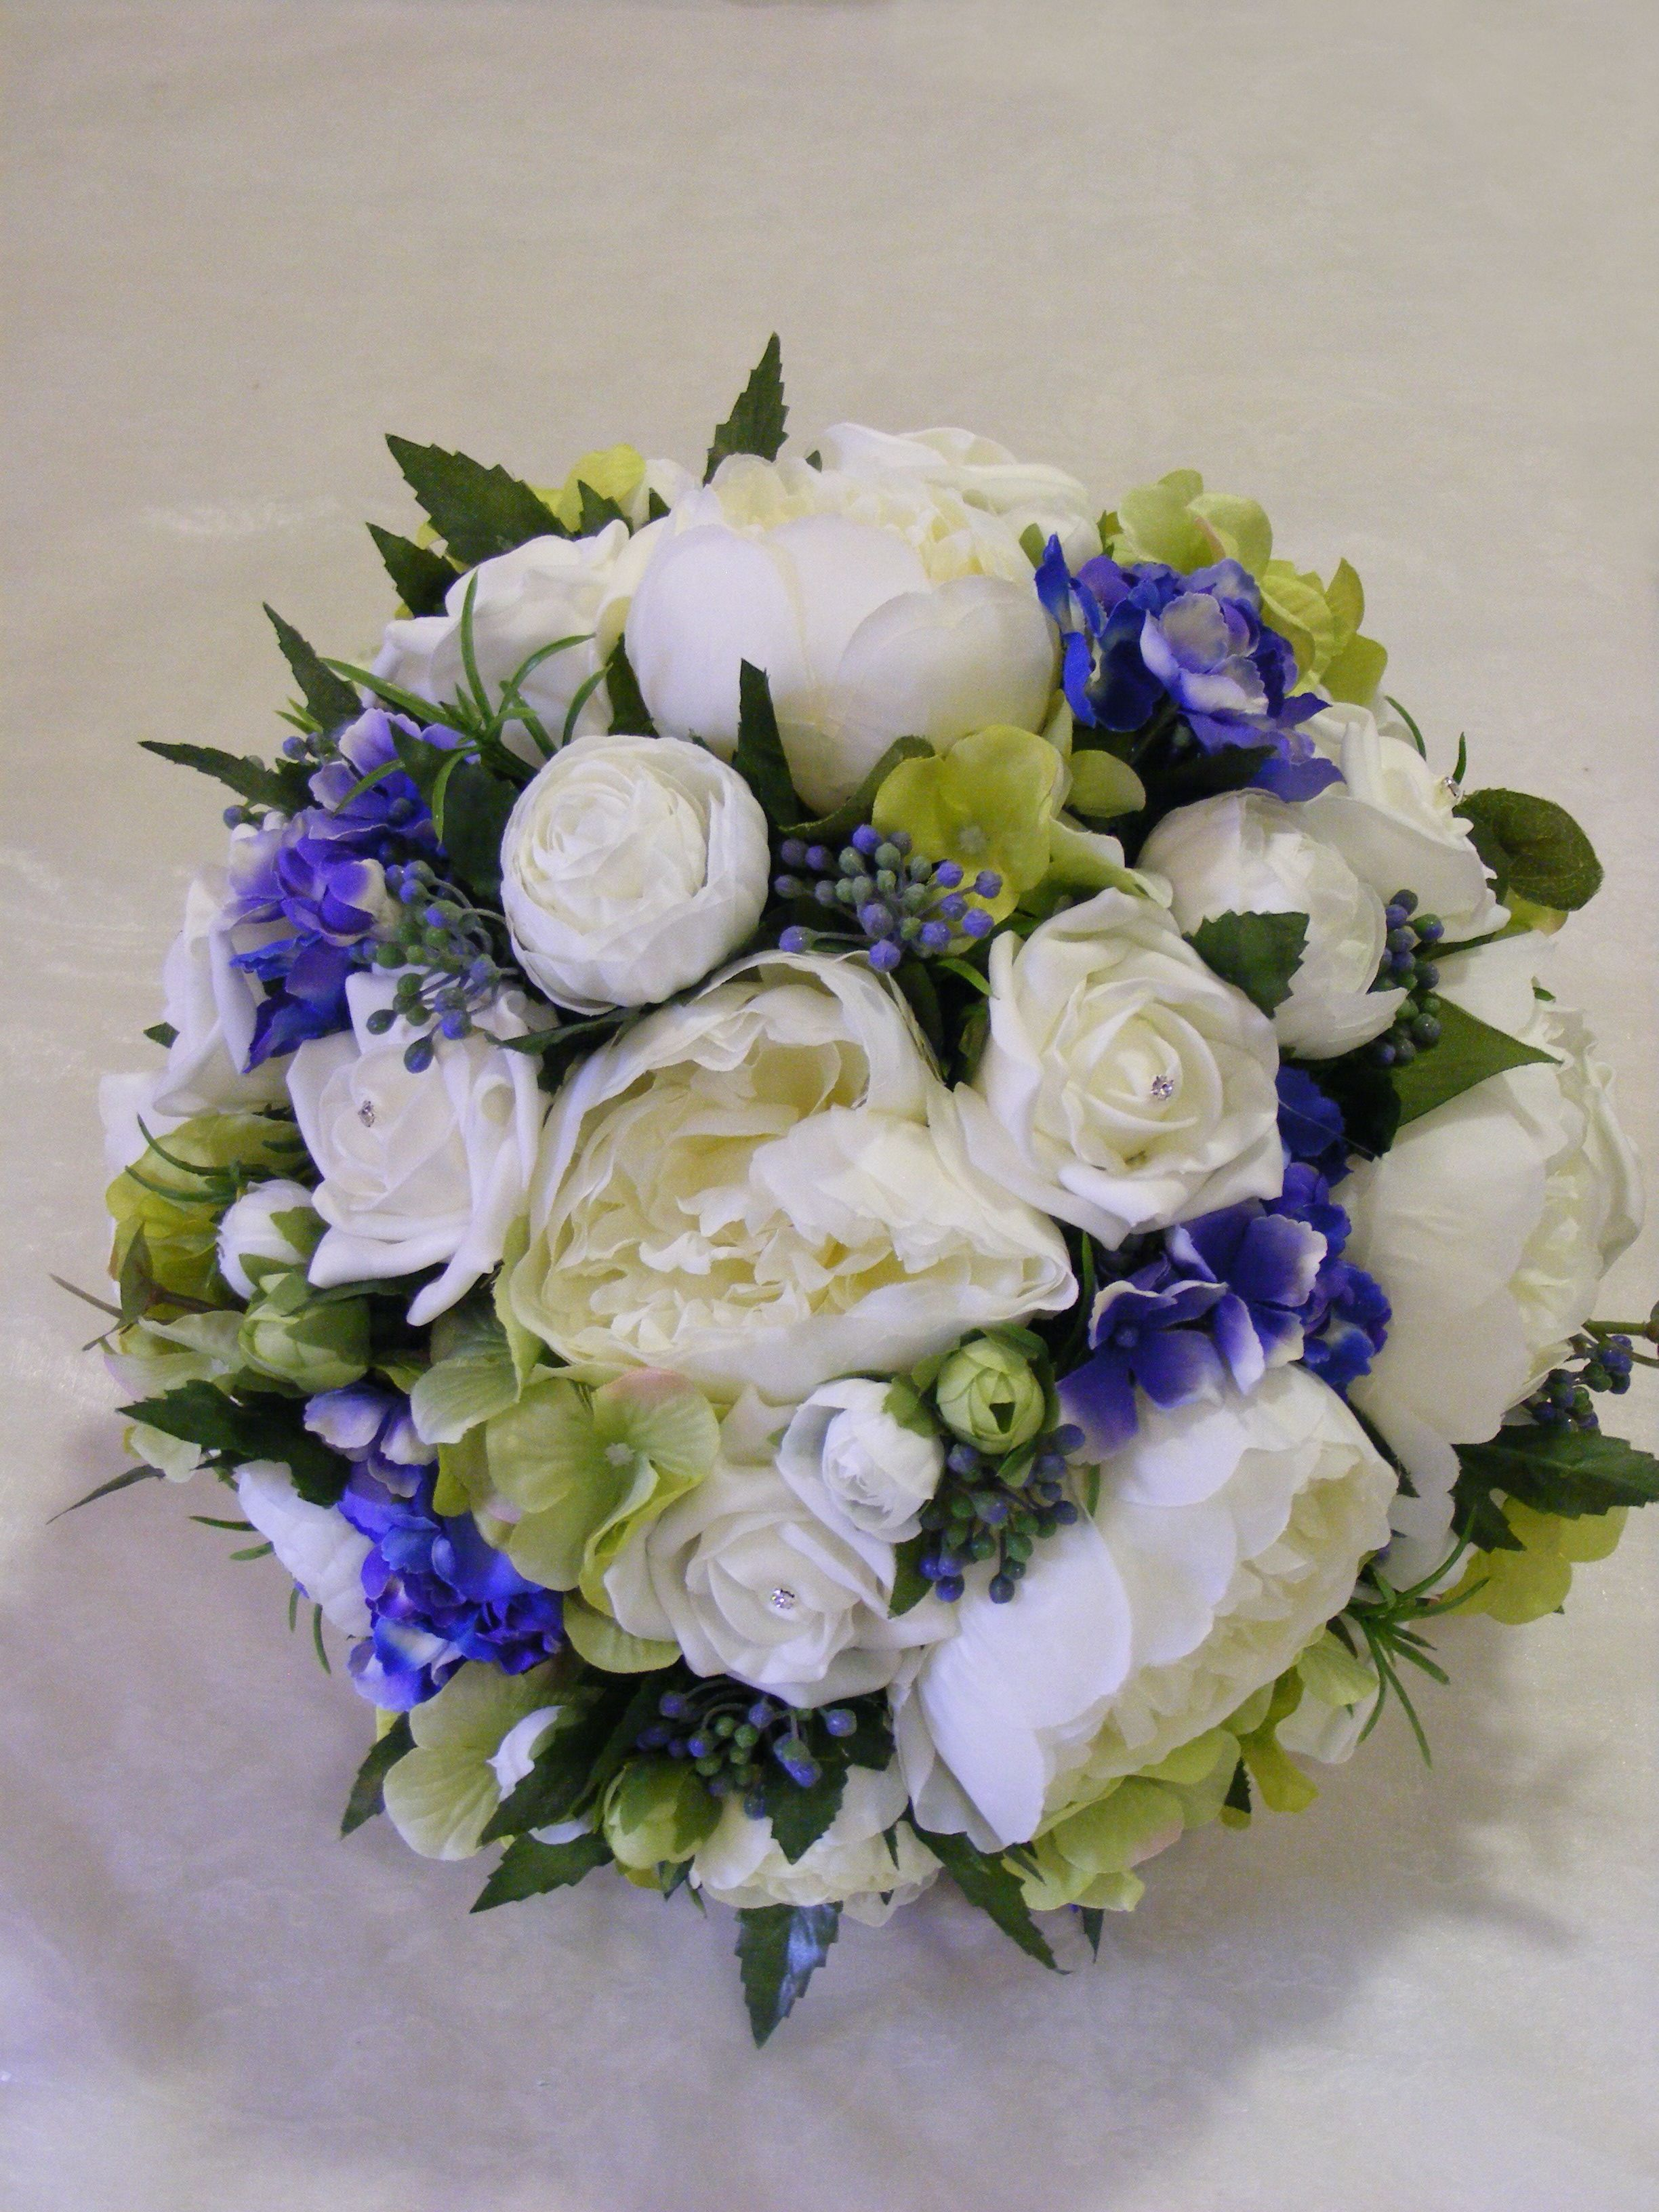 Love this bridal bouquet that we designed in everlasting flowers love this bridal bouquet that we designed in everlasting flowers fabulous cream blue and green flowers peonies roses hydrangea muscari and a touch of izmirmasajfo